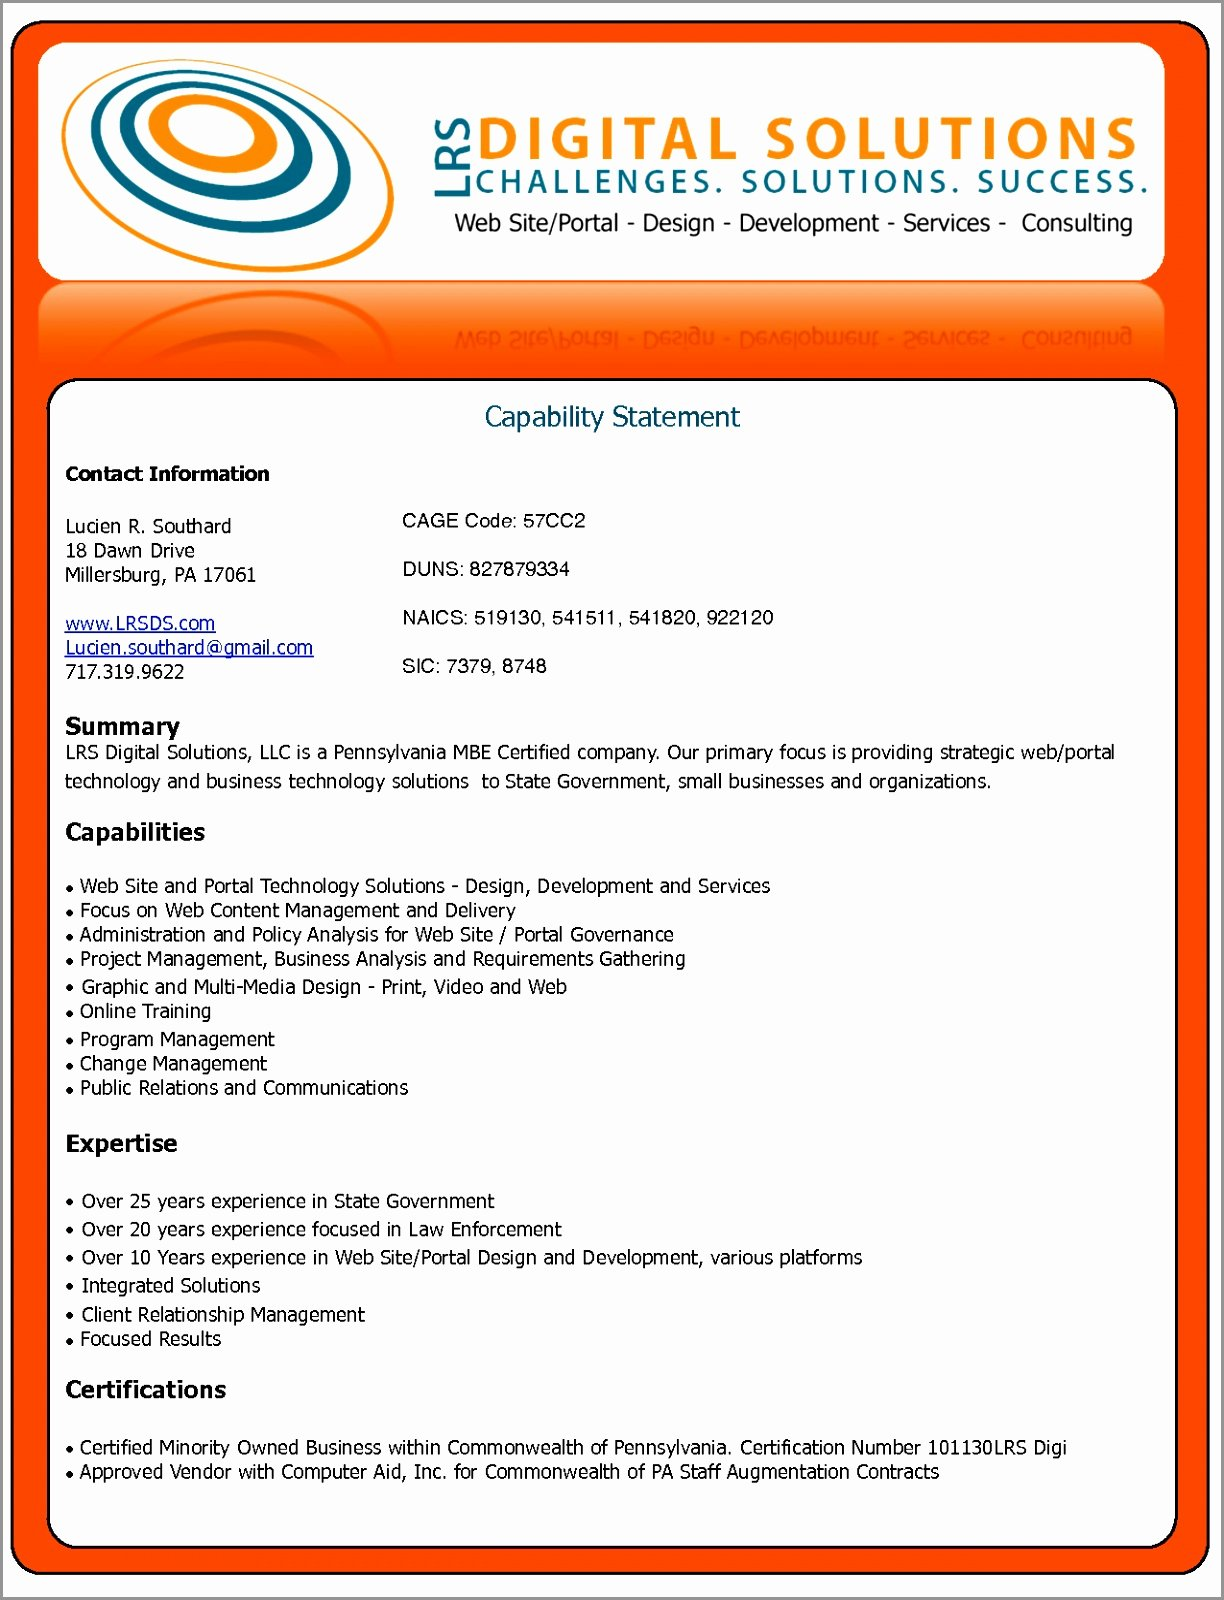 Free Capability Statement Template Word Inspirational Sample Capability Statement Templates – 15 Free Documents